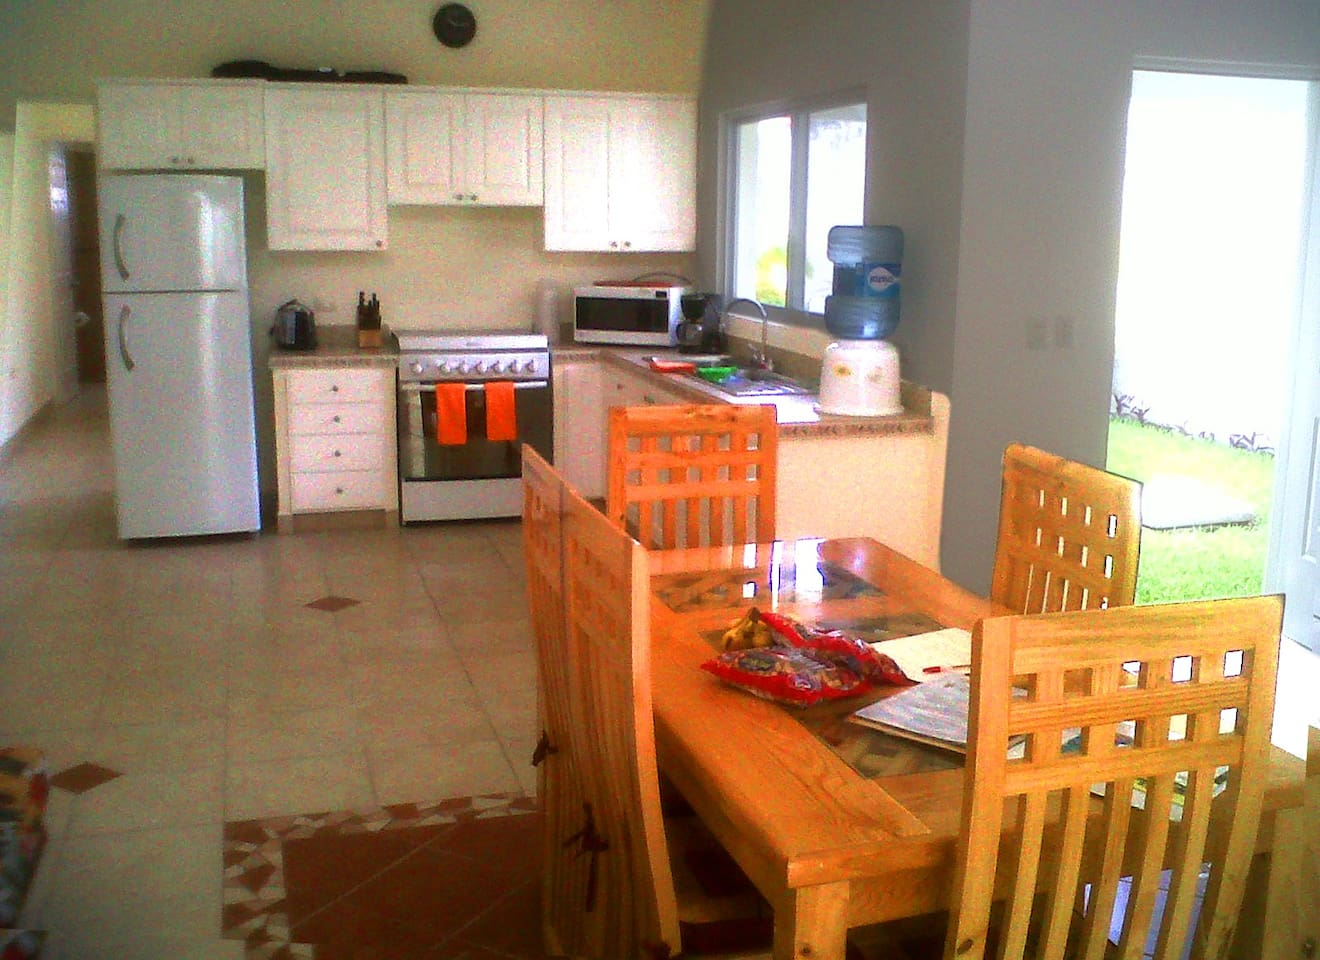 Full kitchen with spacious dining area.  Very open space with a lot of natural light.  No air conditioning in this area.